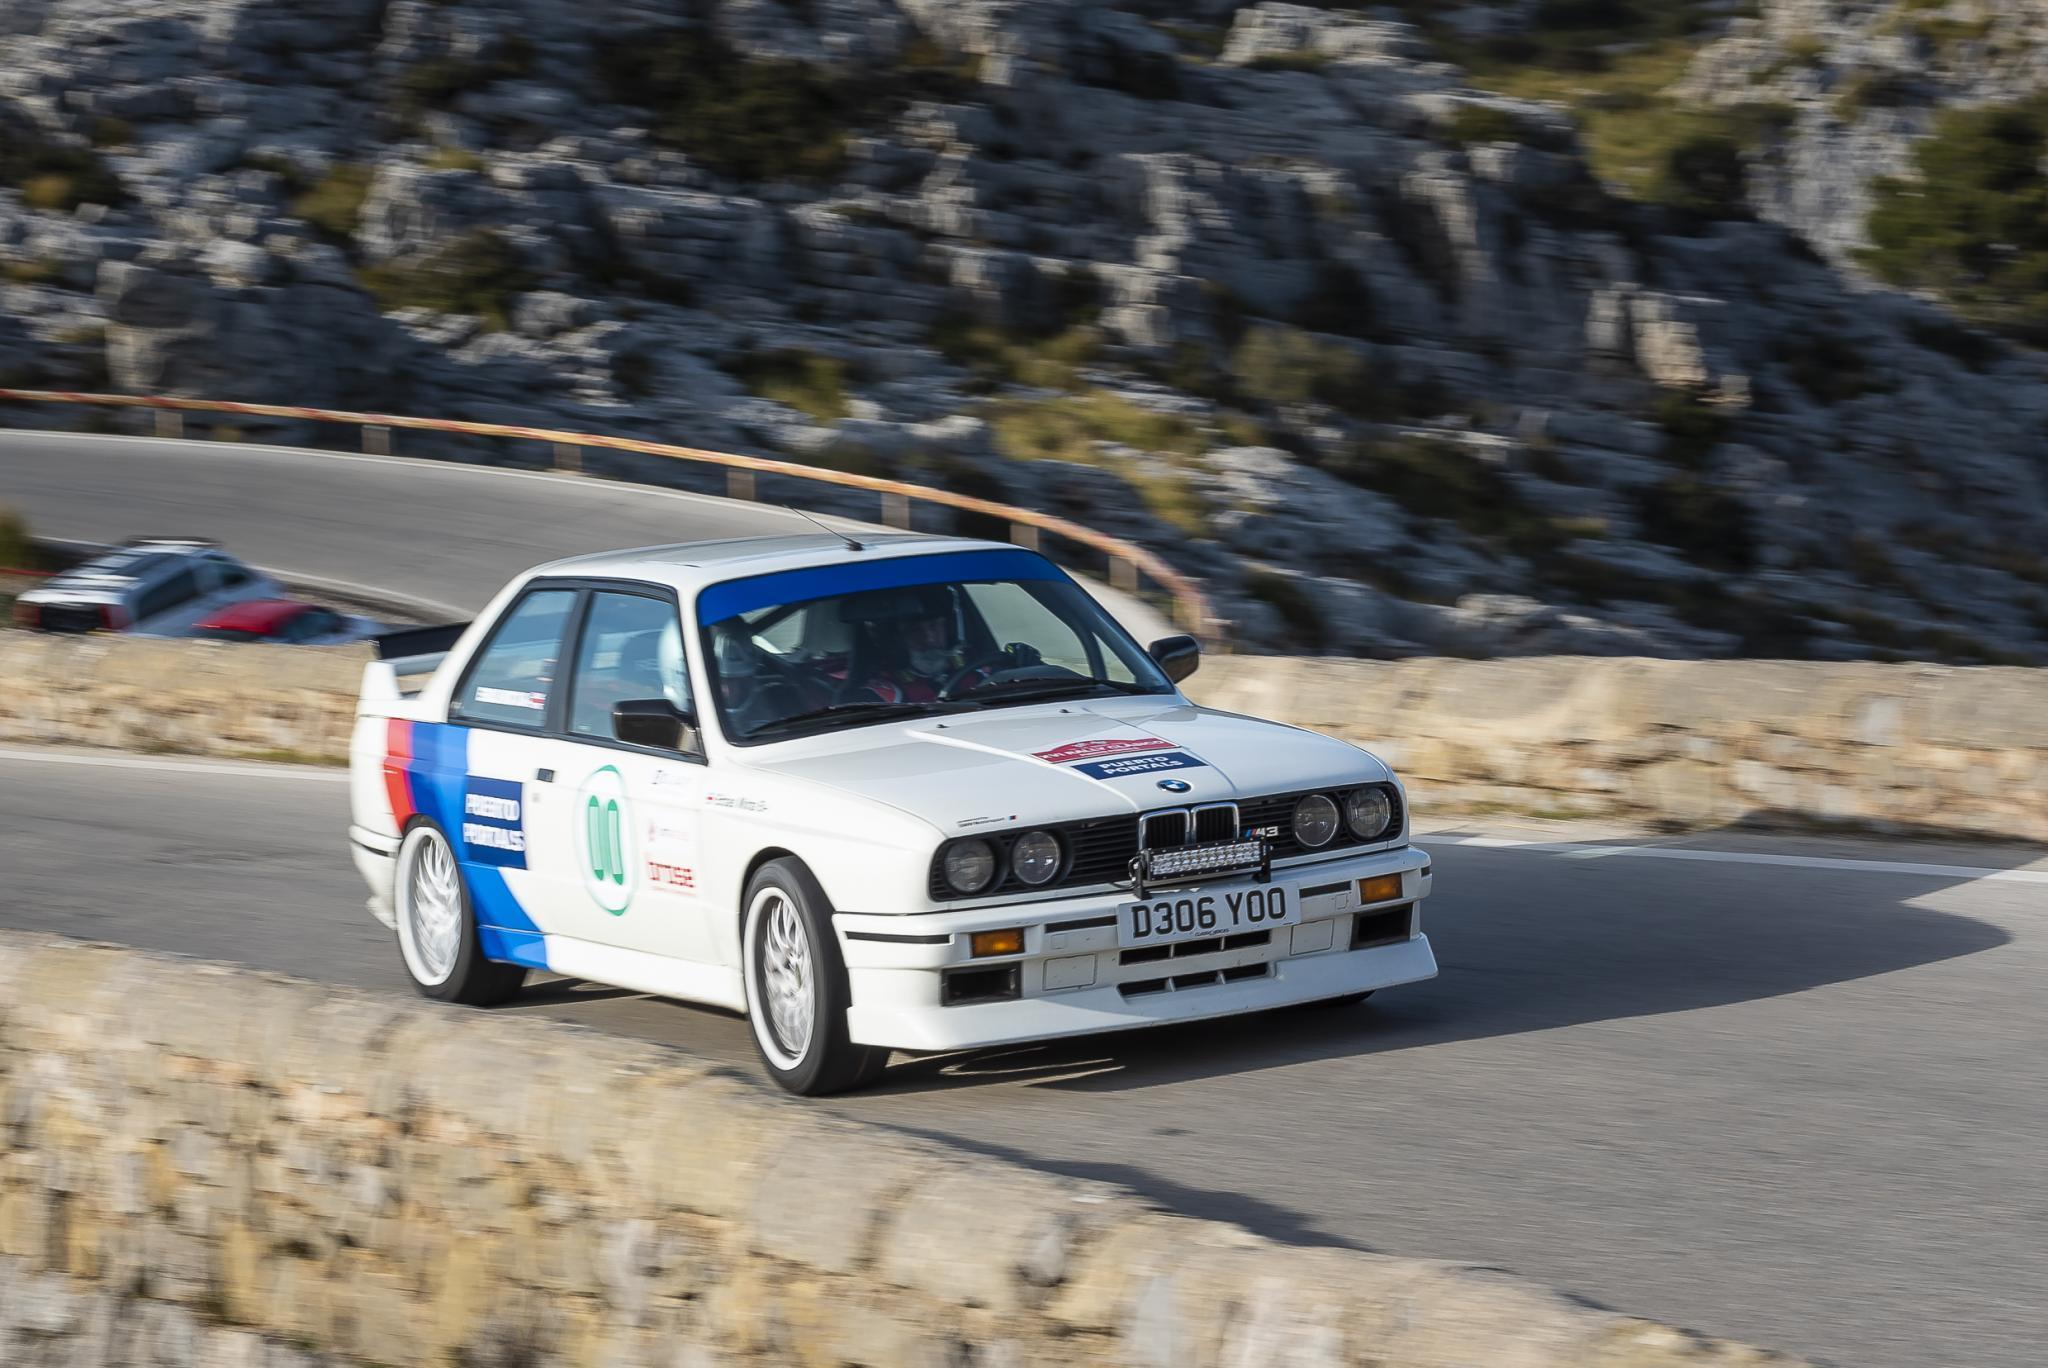 The stars were also out racing, here's Jay Kay in his M3 BMW.